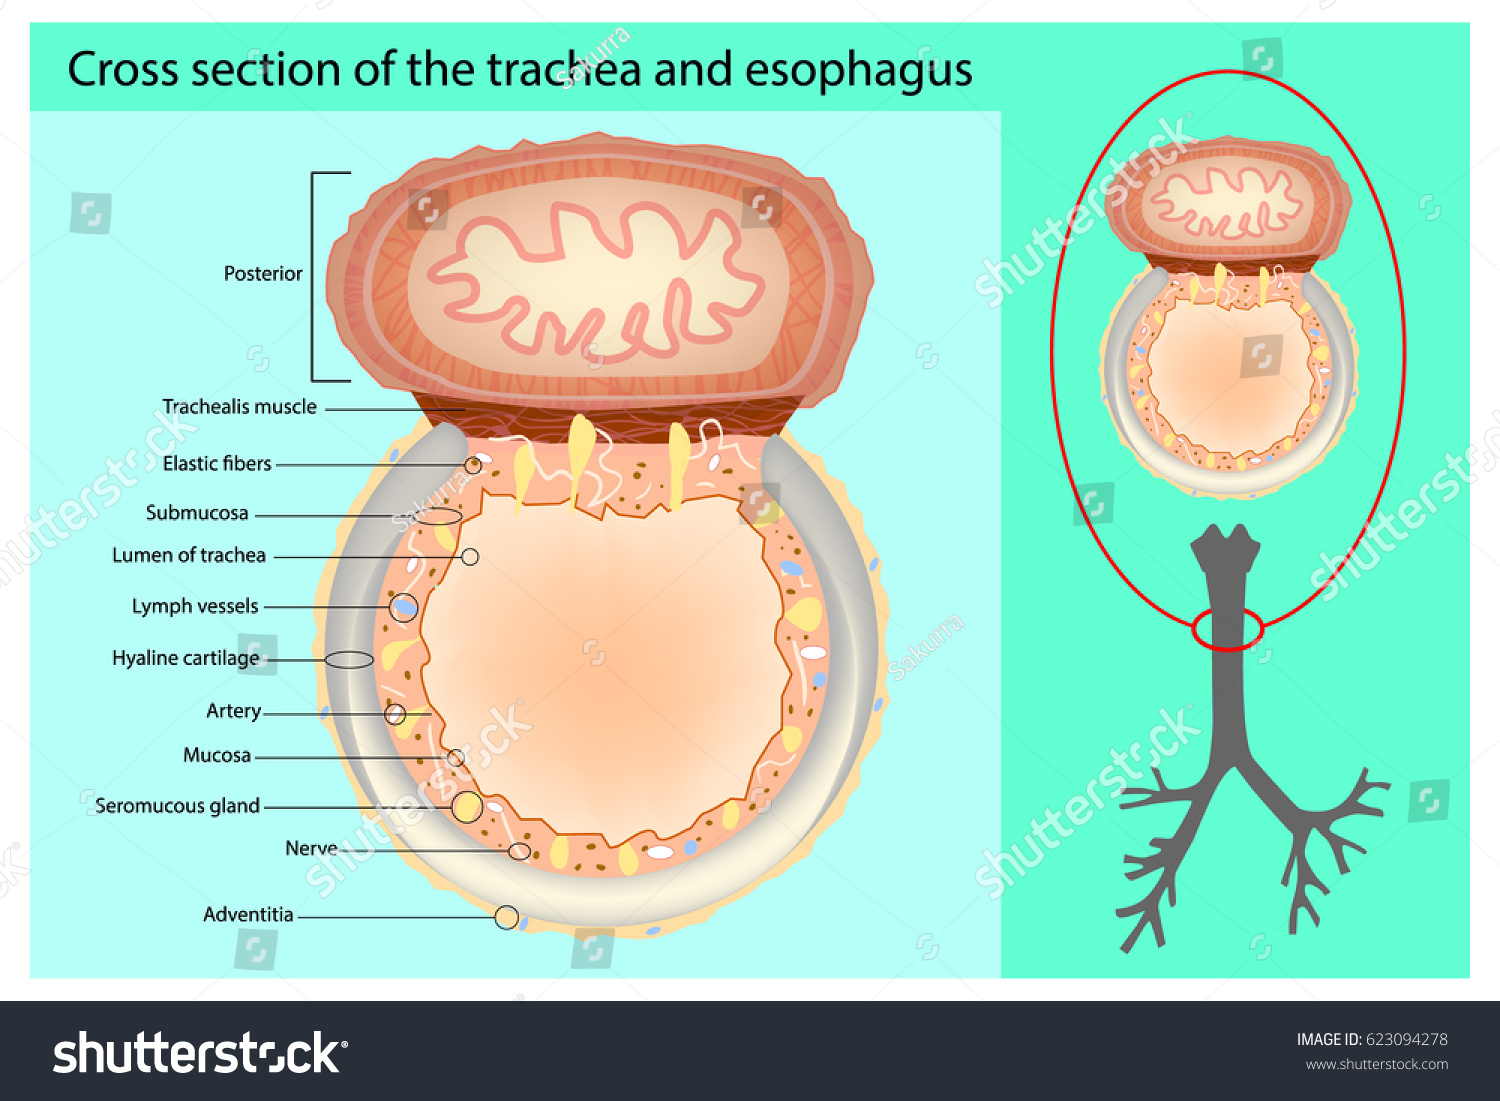 Stock Vector Cross Section Of The Trachea And Esophagus Trachea And Esophagus Anatomy